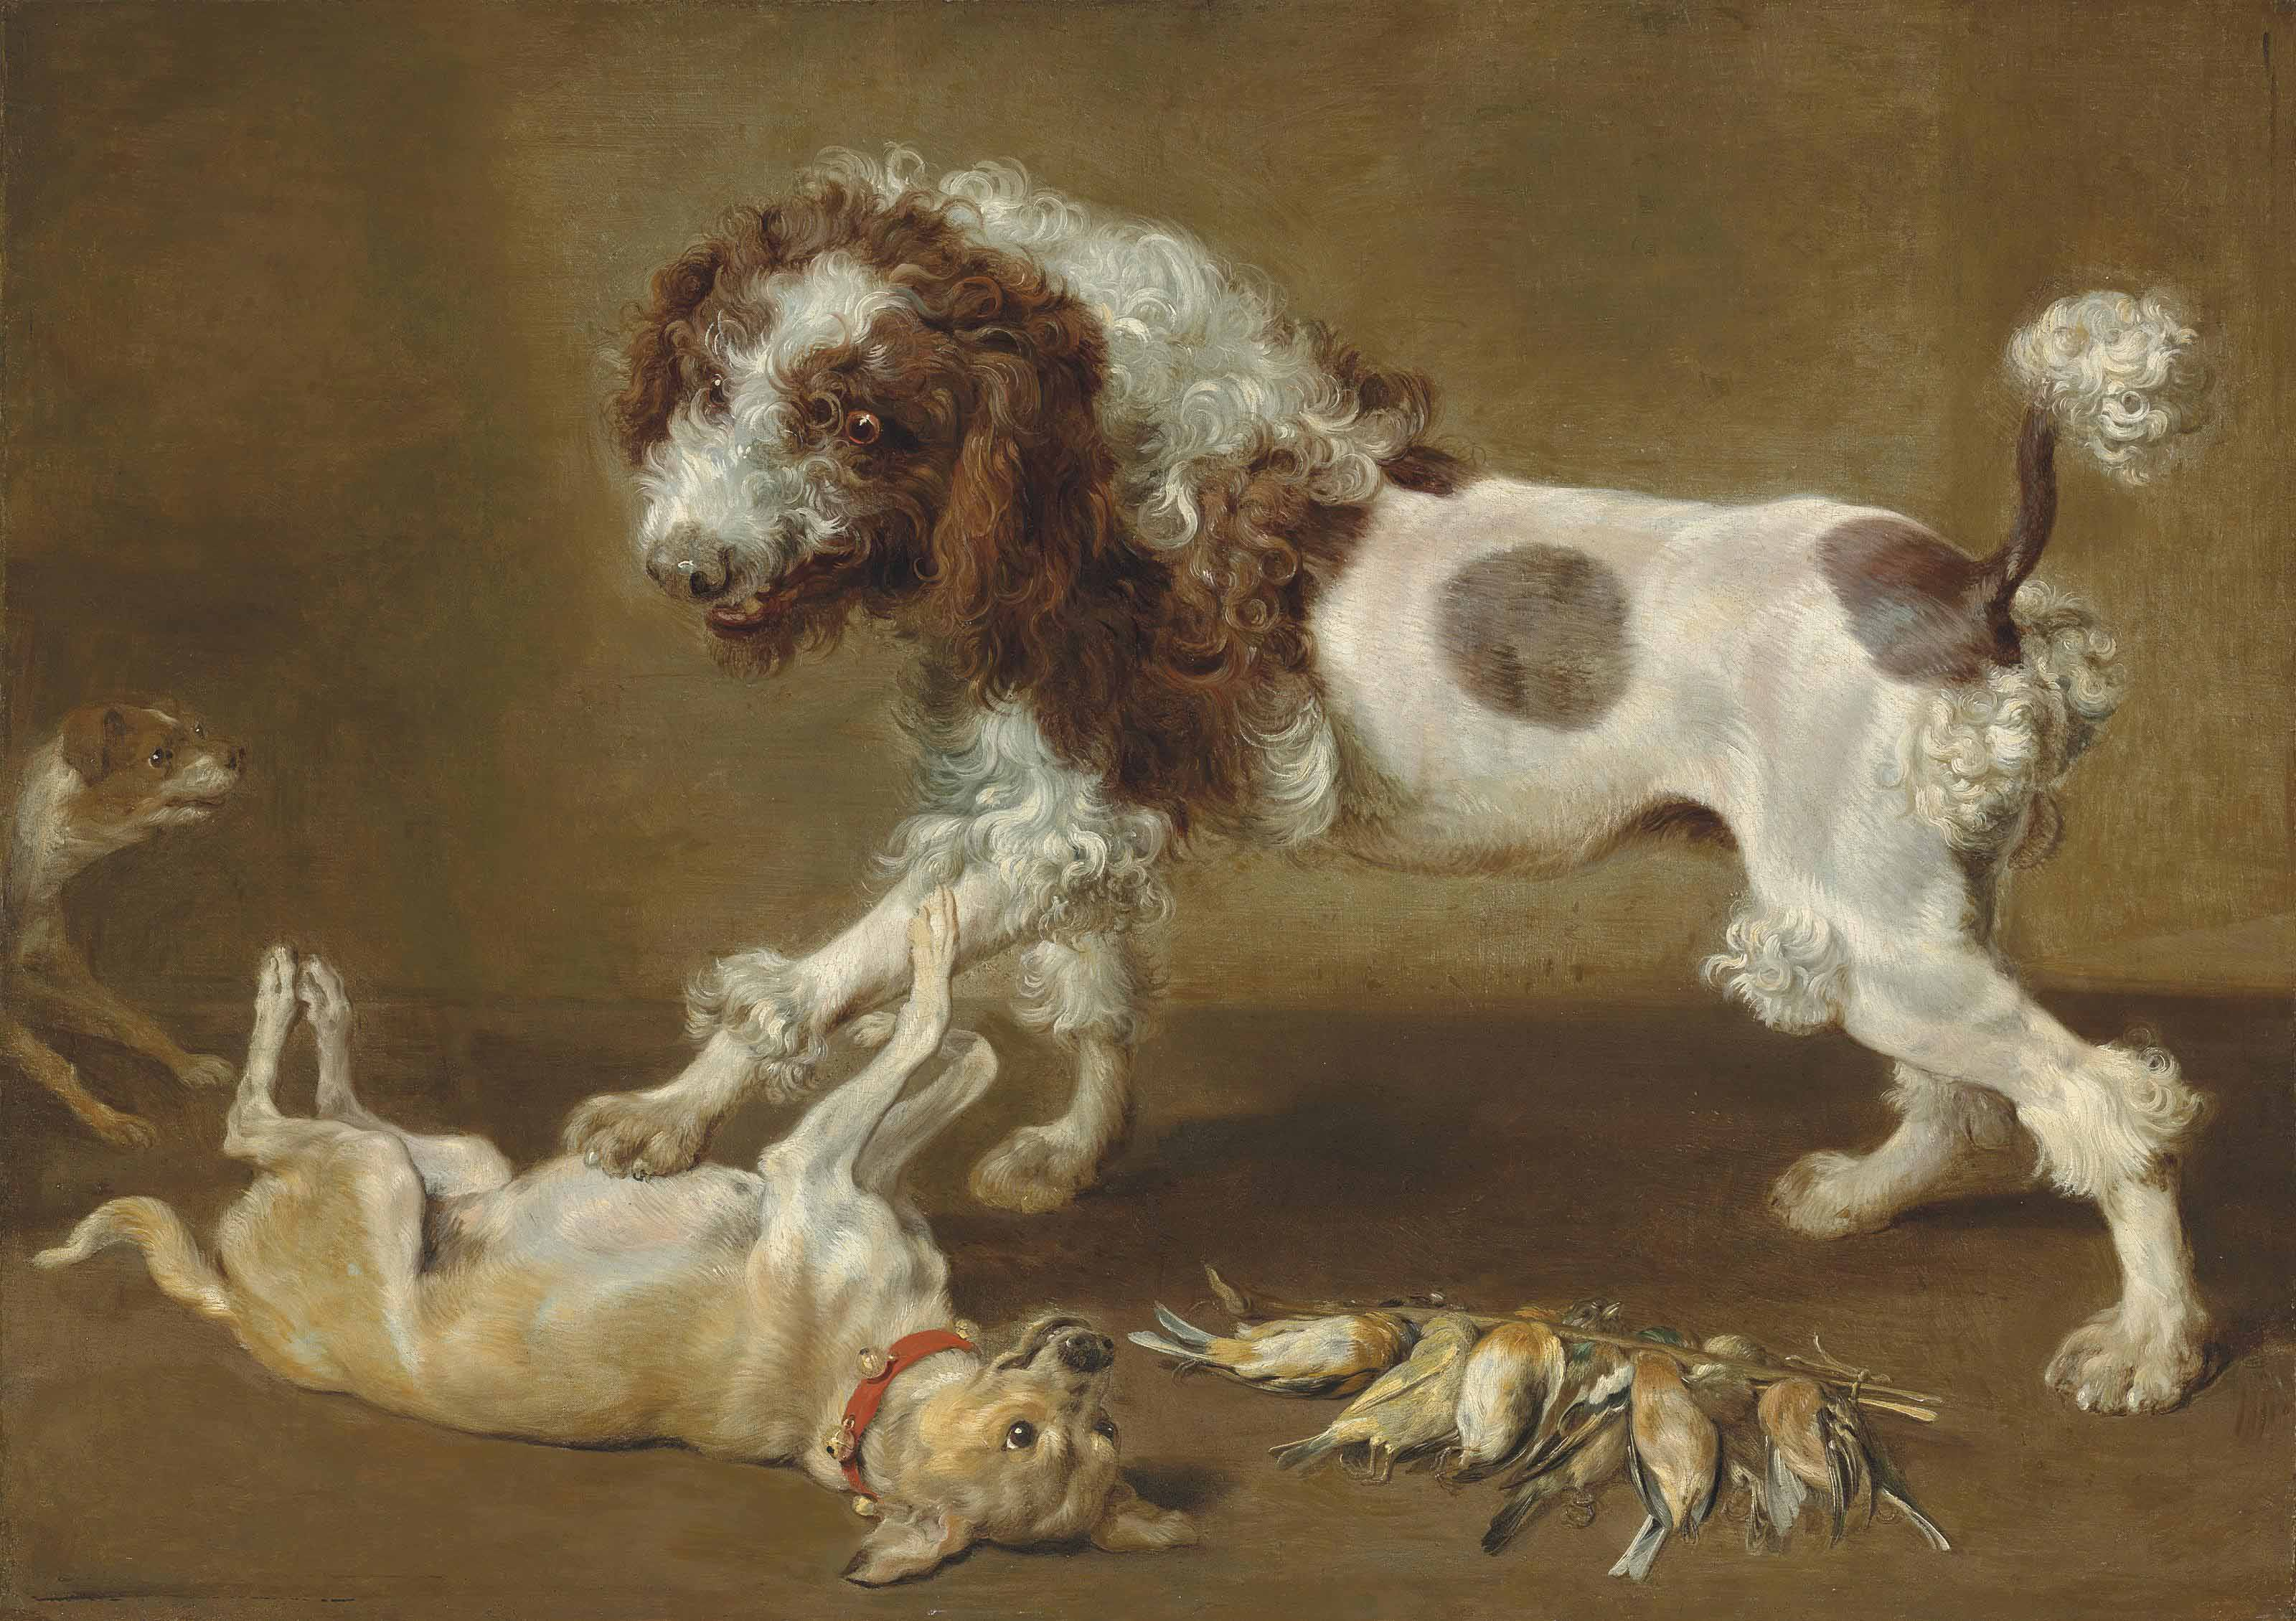 https://www.christies.com/img/LotImages/2015/NYR/2015_NYR_03706_0007_000(paul_de_vos_three_dogs_playing_with_songbirds_on_the_floor).jpg